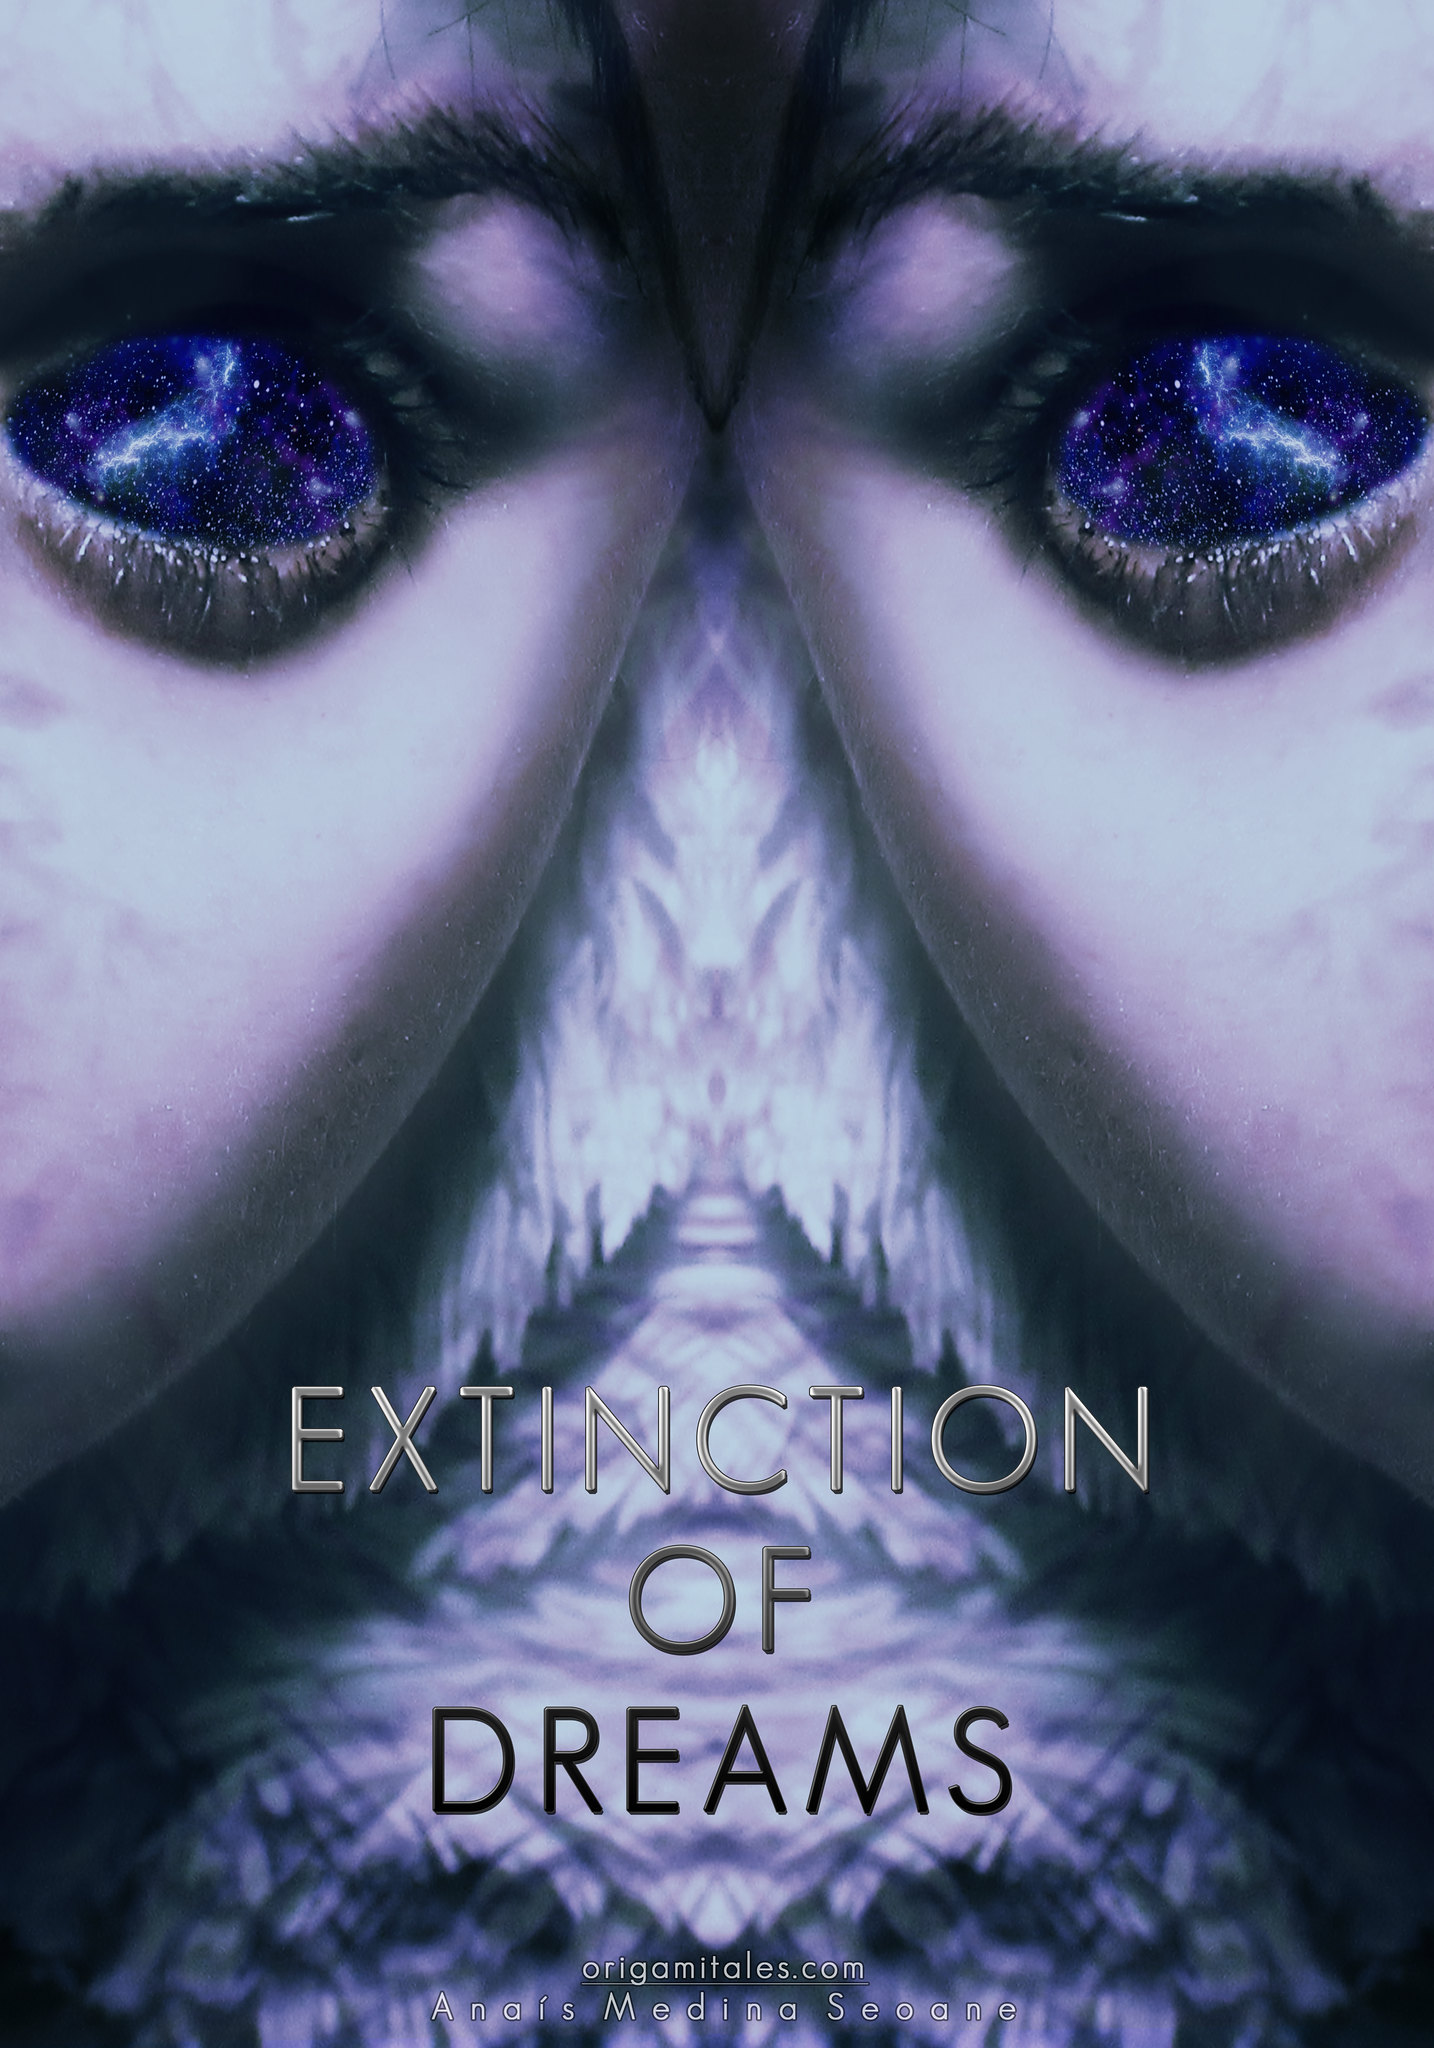 Extinction of dreams (POSTER ART)